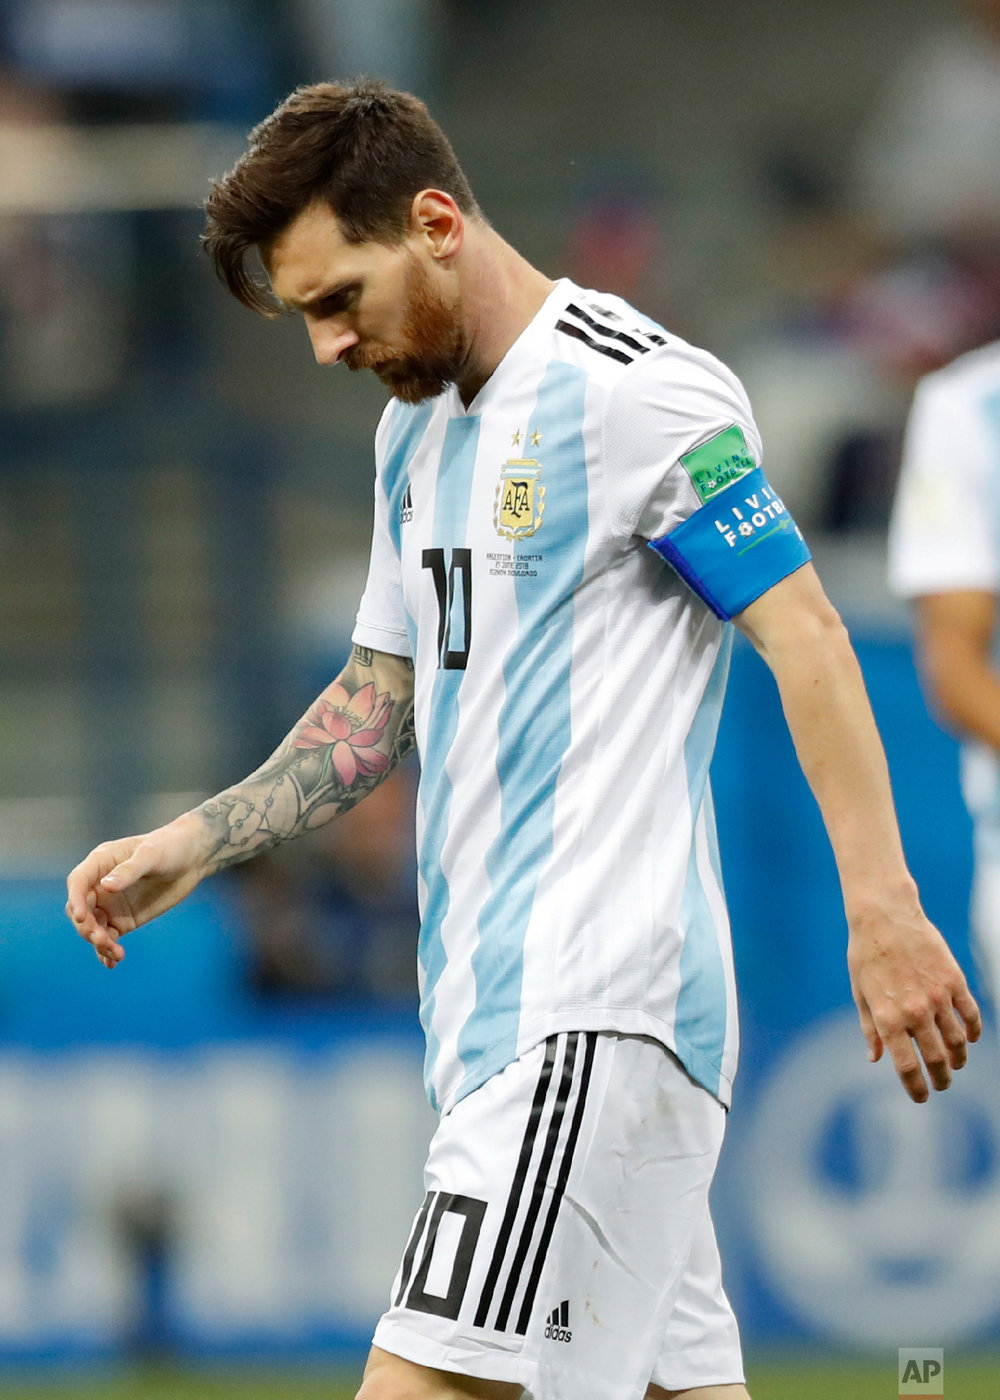 Argentina's Lionel Messi looks down after Croatia's Luka Modric scored his side's second goal during the group D match between Argentina and Croatia at the 2018 soccer World Cup in Nizhny Novgorod Stadium in Novgorod, Russia, Thursday, June 21, 2018. (AP Photo/Pavel Golovkin)